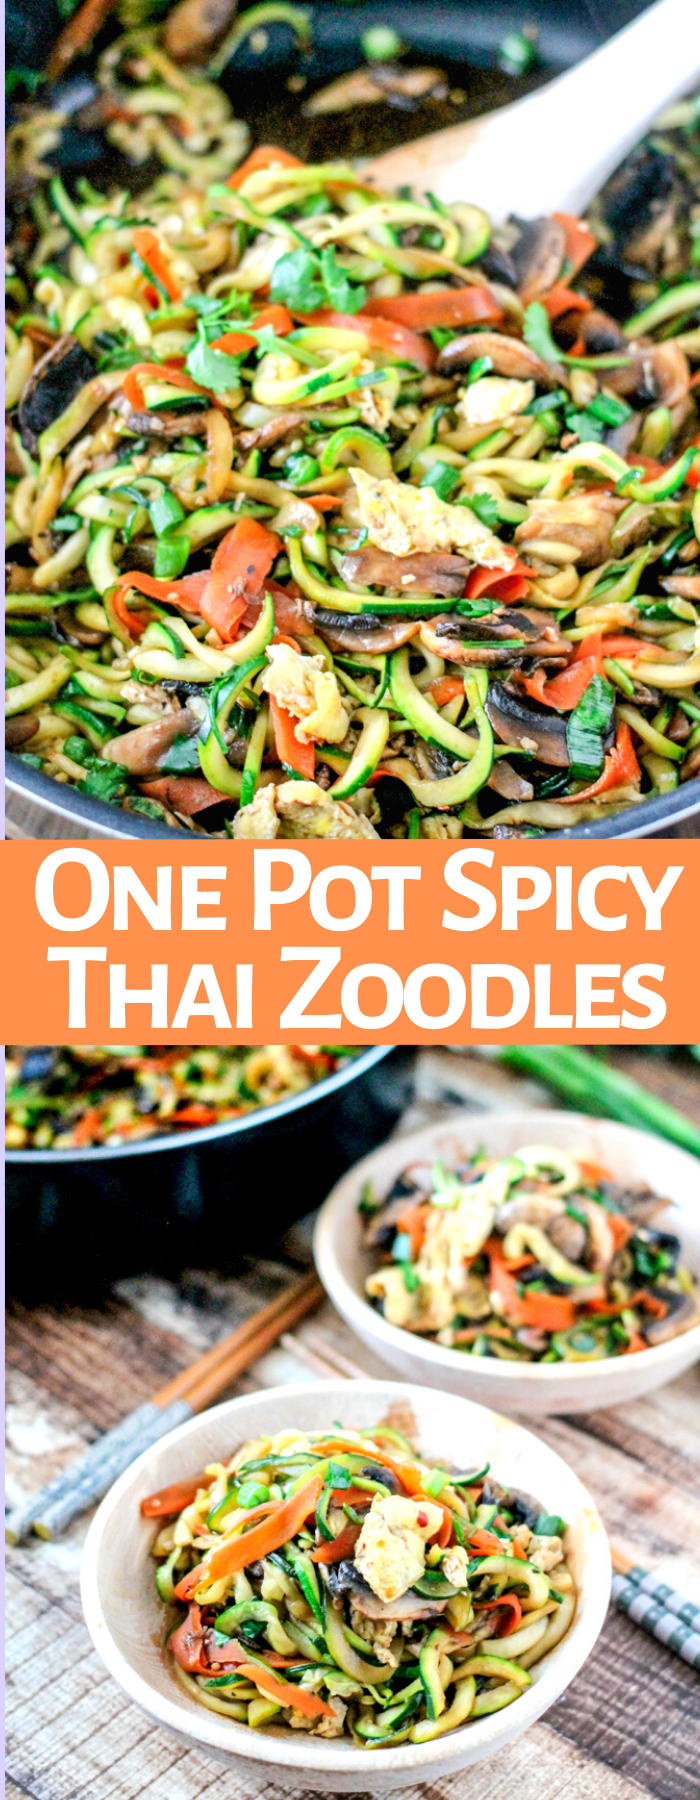 One Pot Spicy Thai Zoodles are the perfect healthy meal! Substitute zucchini noodles for pasta for only 162 calories PER SERVING! So amazing!